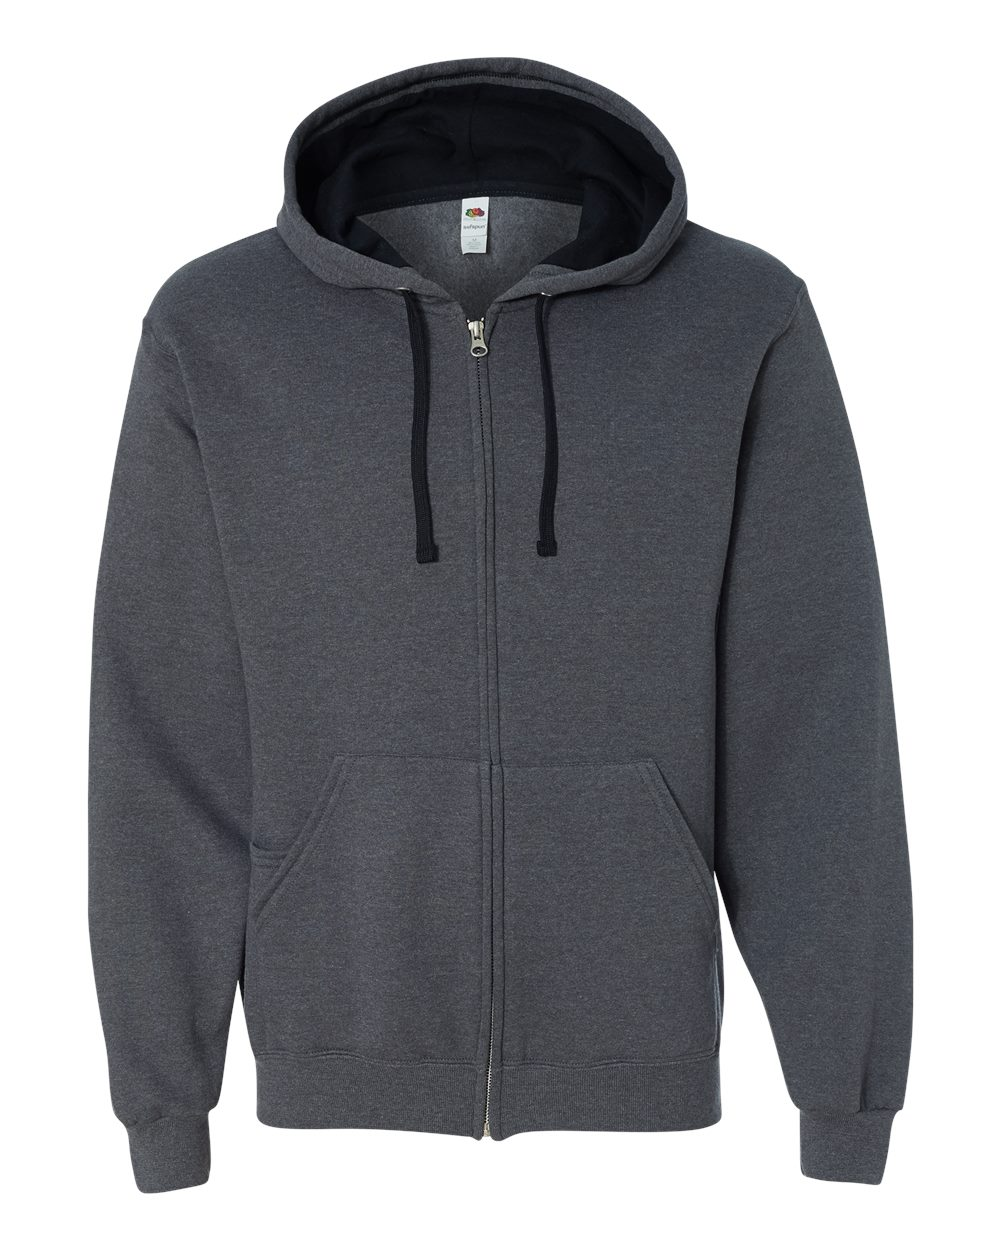 Fruit-of-the-Loom-Mens-Sofspun-Hooded-Full-Zip-Sweatshirt-Blank-SF73R-up-to-3XL thumbnail 15